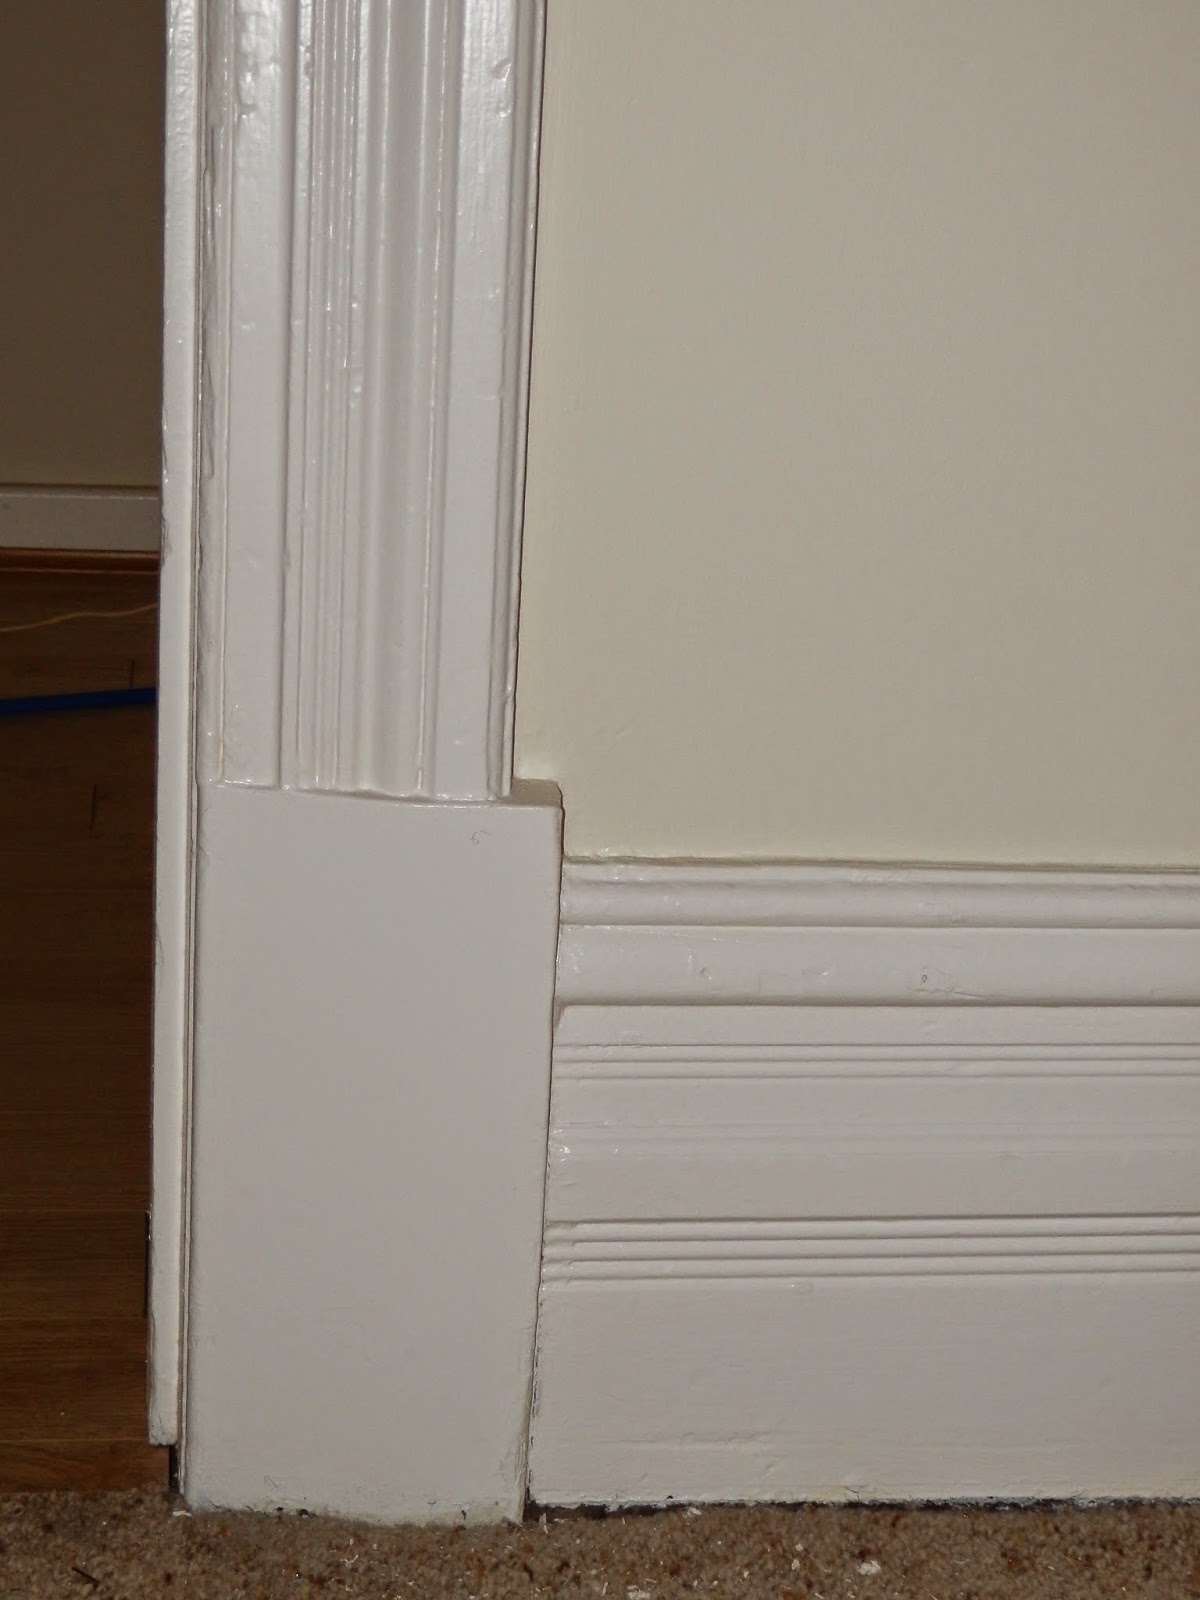 The Doors Were All Recut From Sliding Doors The Only Things Big Enough To  Fit The Older Wider Measurements Except That Is For The Bathroom. Door Skirting Boards   Woodmarque Exceptional Tural Joinery And